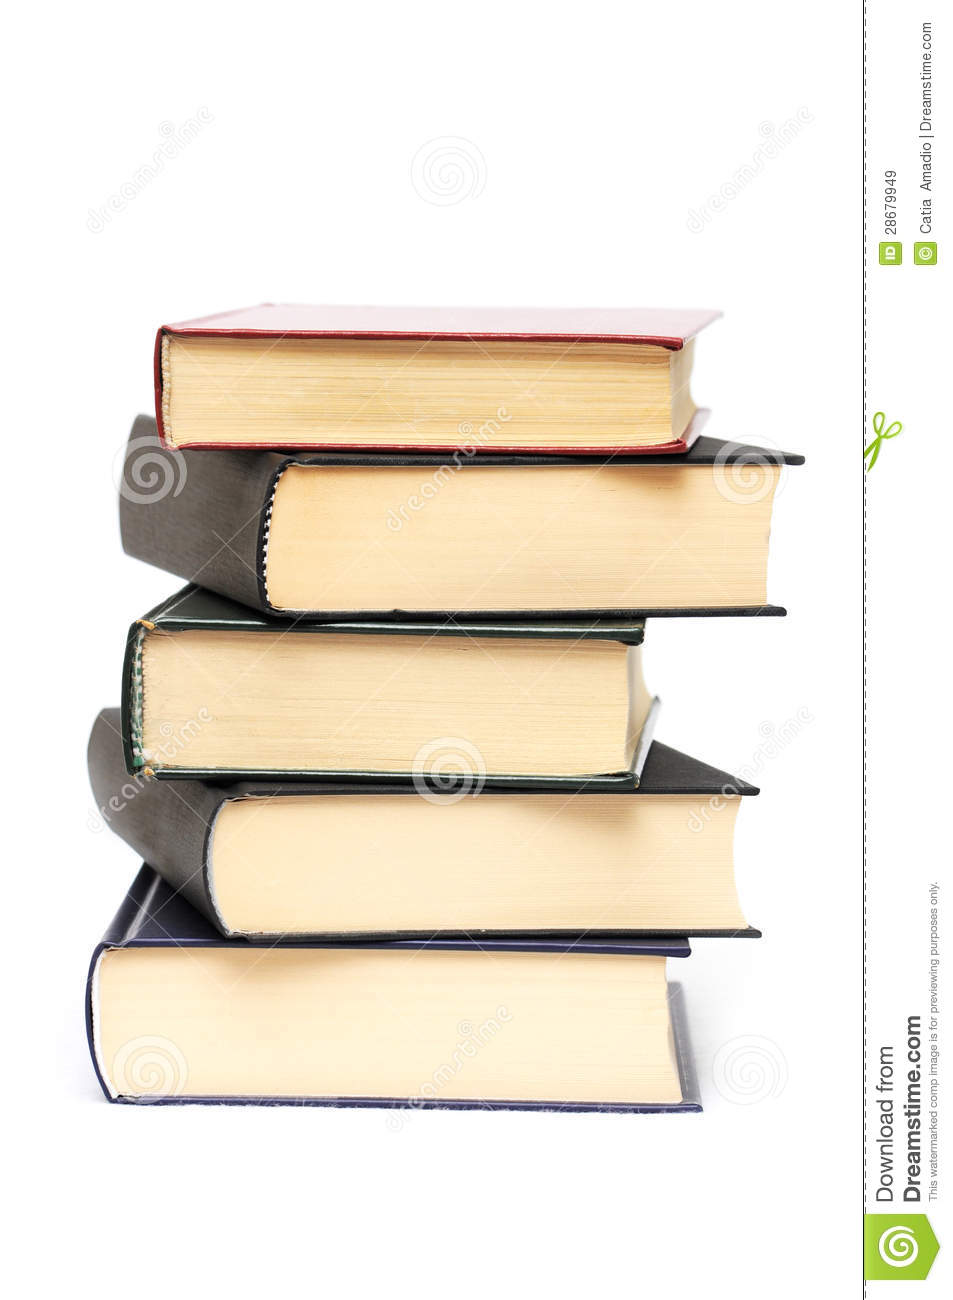 Pile of five books